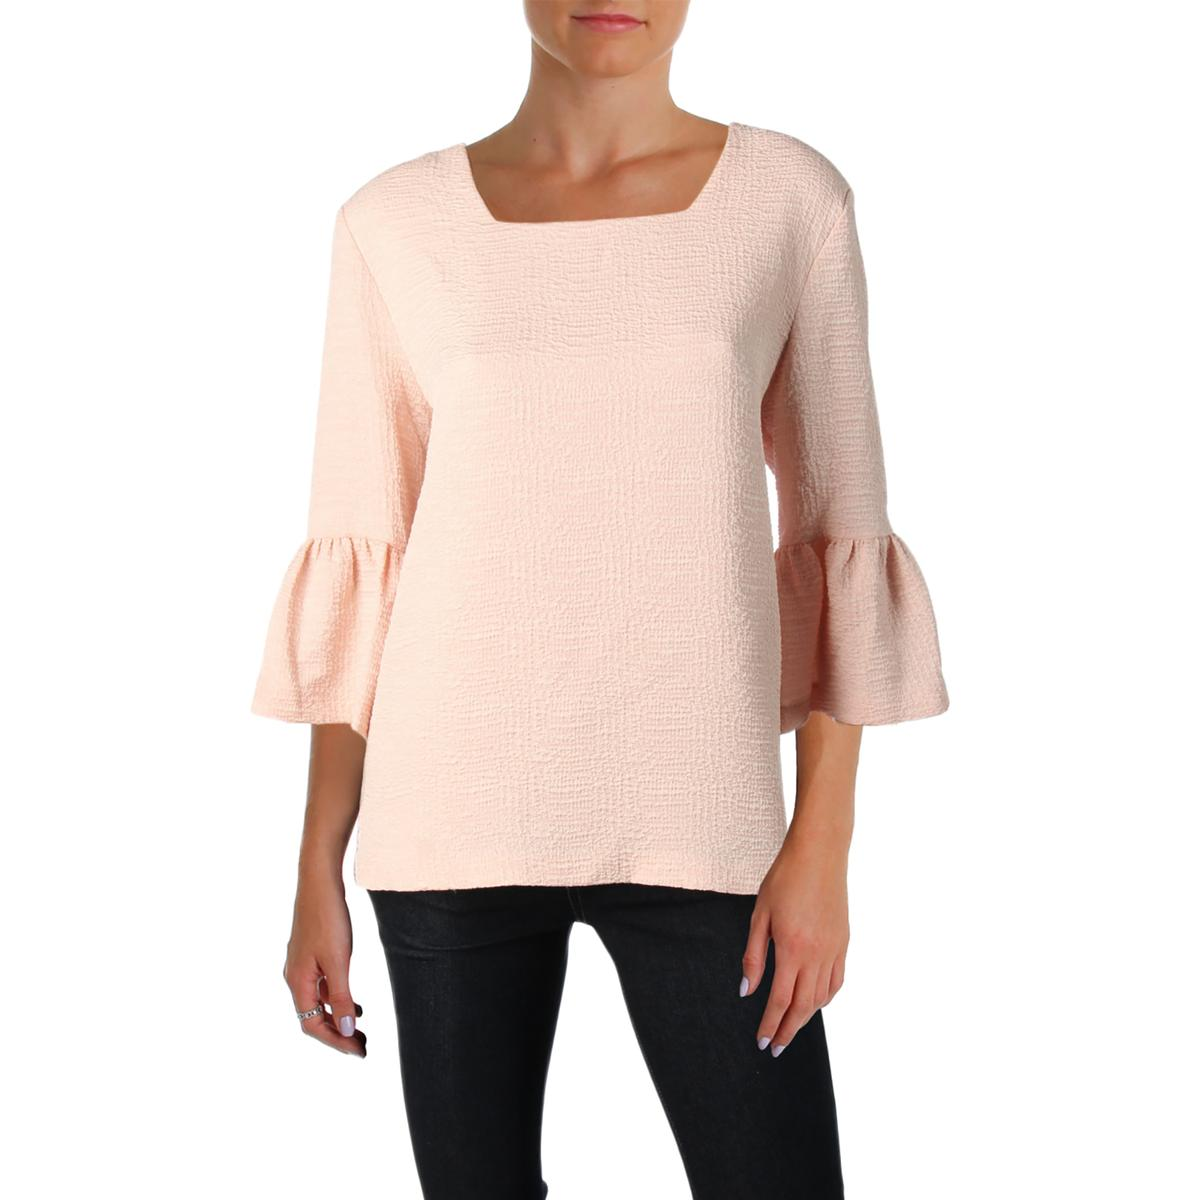 ec04f44766230 Calvin Klein Womens Pink Textured Square Neck Blouse Top XL BHFO ...